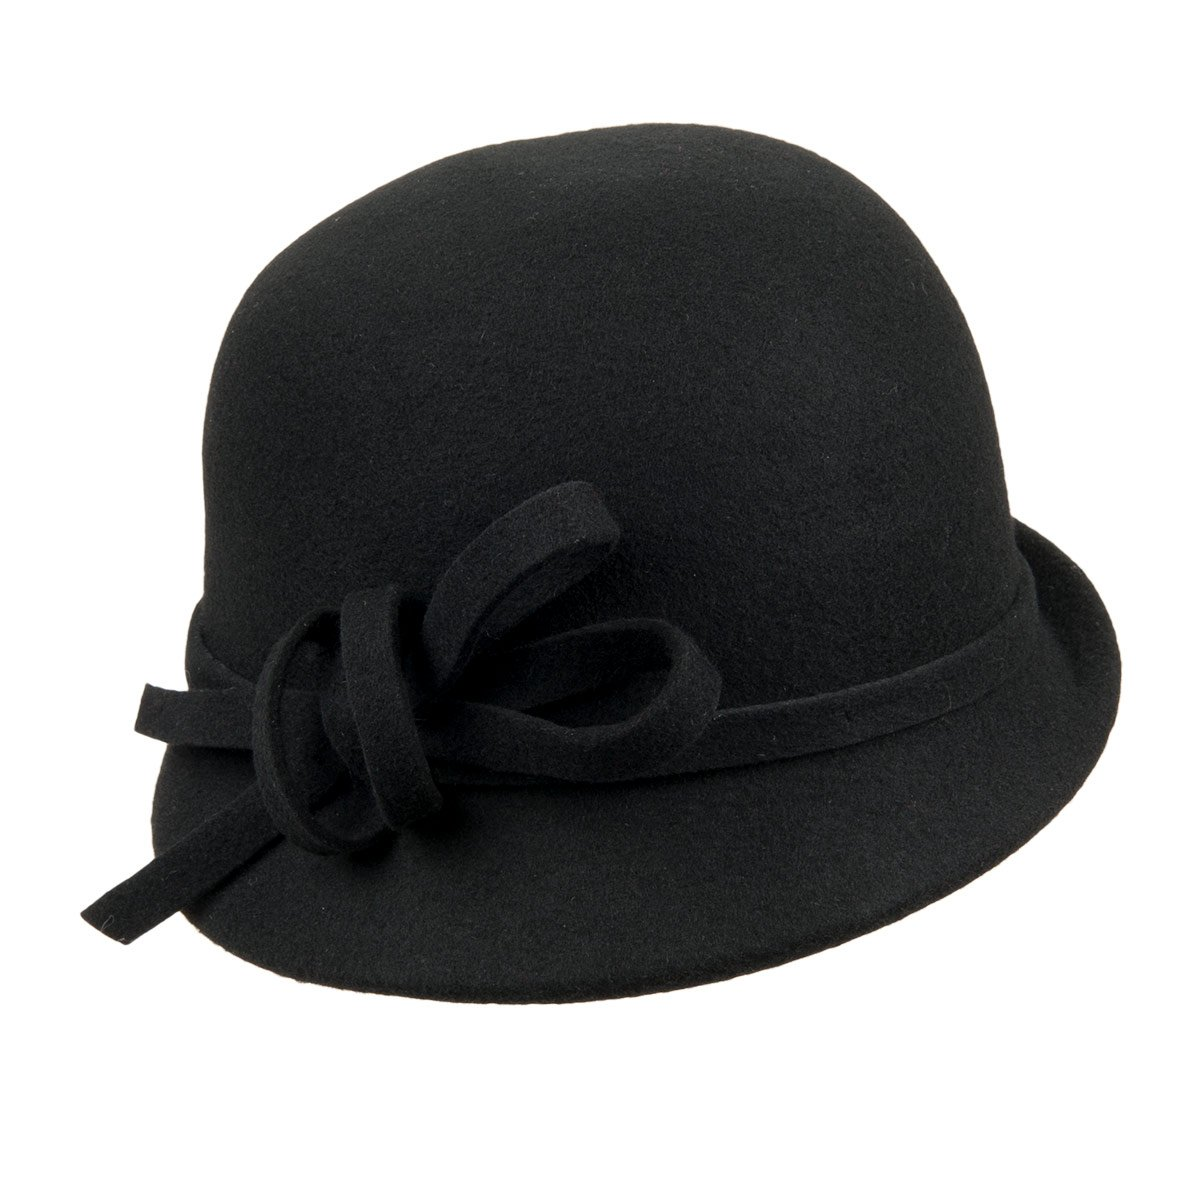 f10cb8e5844a15 woman's hat with small brim in woolfelt, EUR 49,90 --> Online Hatshop for  hats, caps, headbands, gloves and scarfs